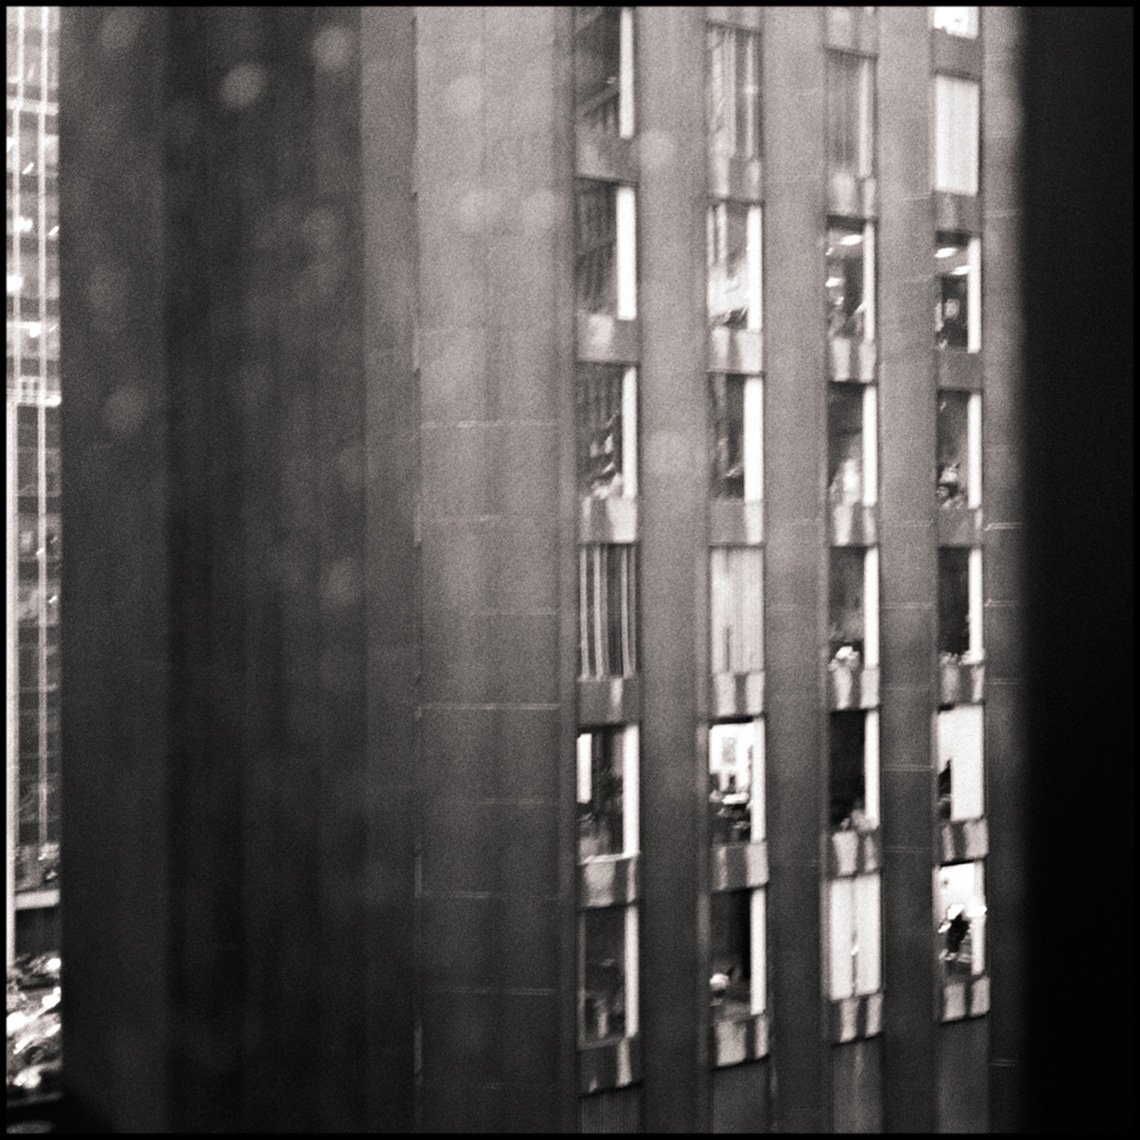 Sean Perry Photographs • Worlds within Windows, from the series Gotham